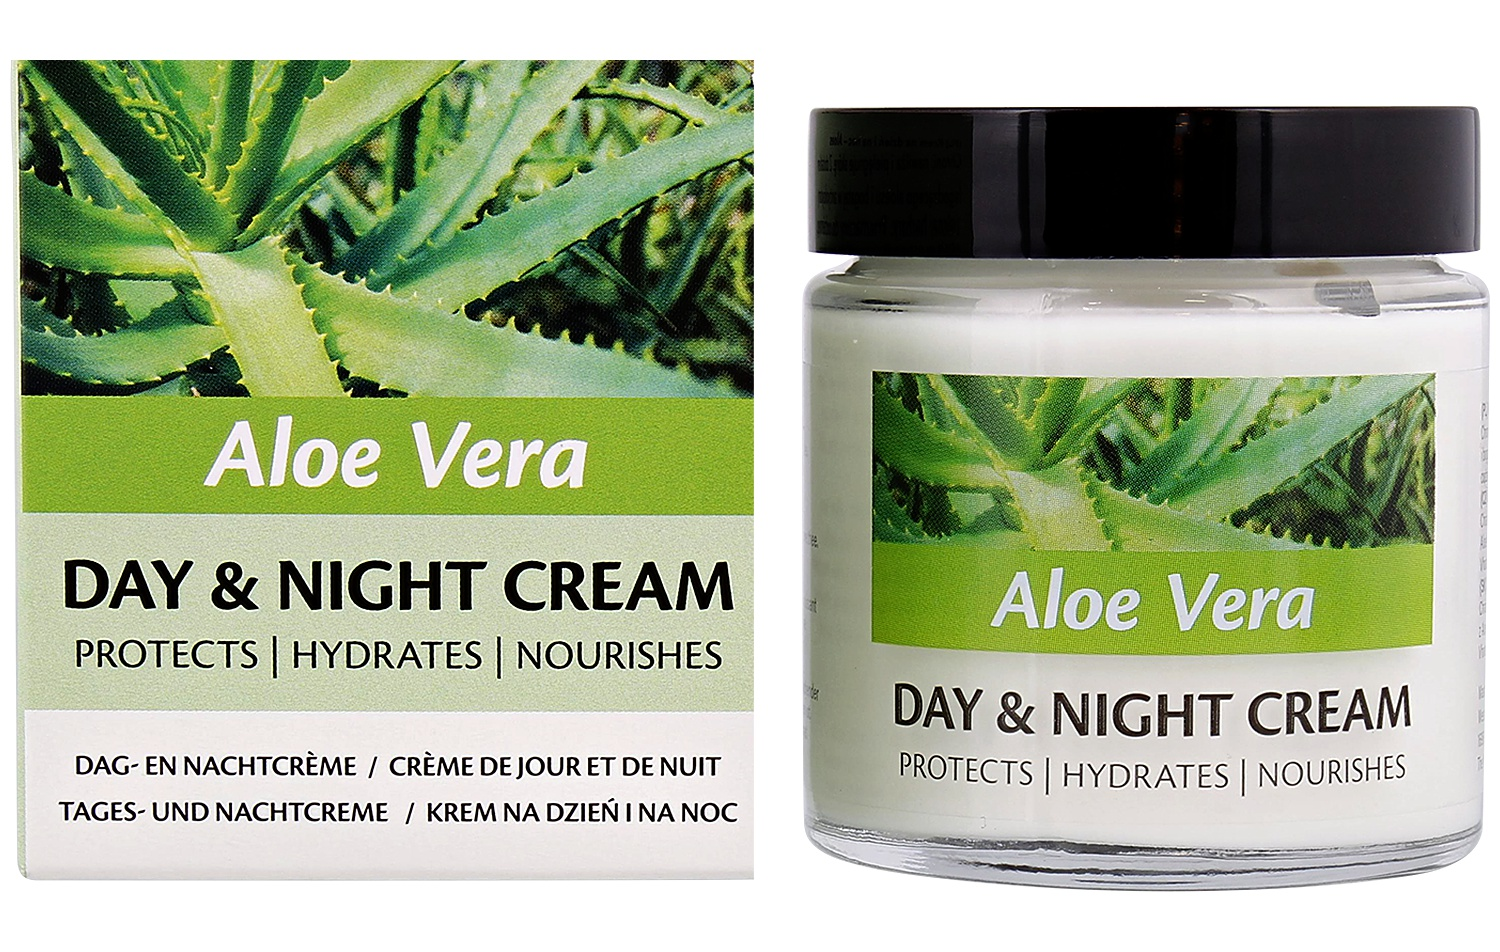 Action Aloe Vera Day & Night Cream